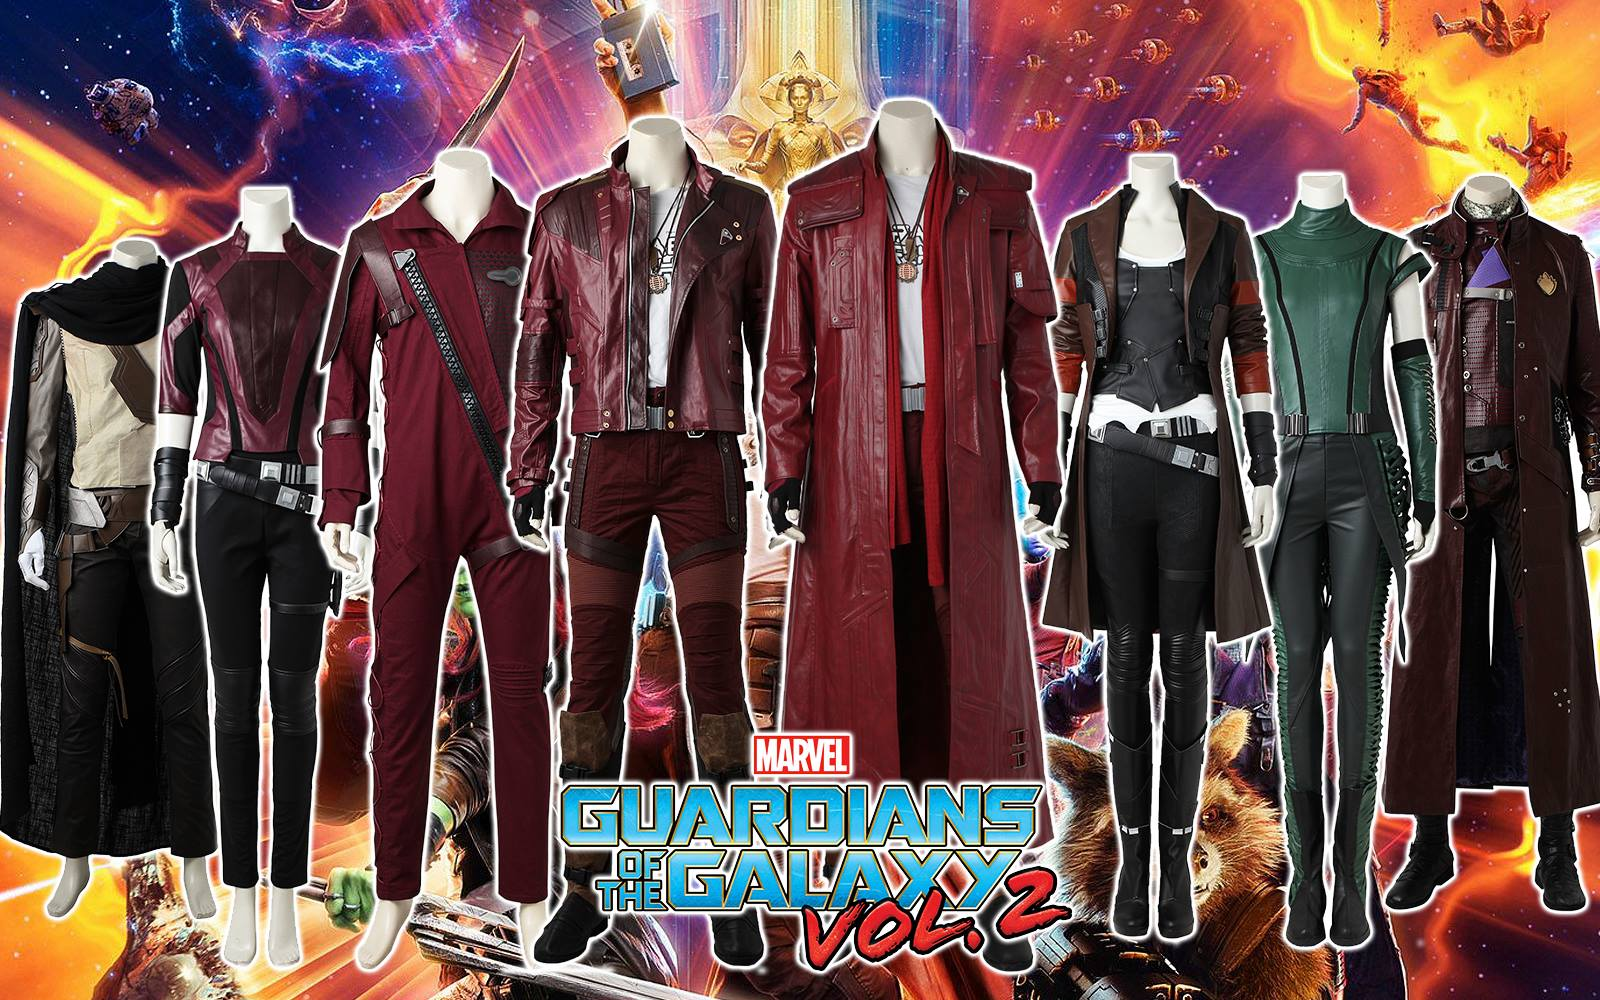 Guide About Buy Good Cosplay Costumes From Which Online Store